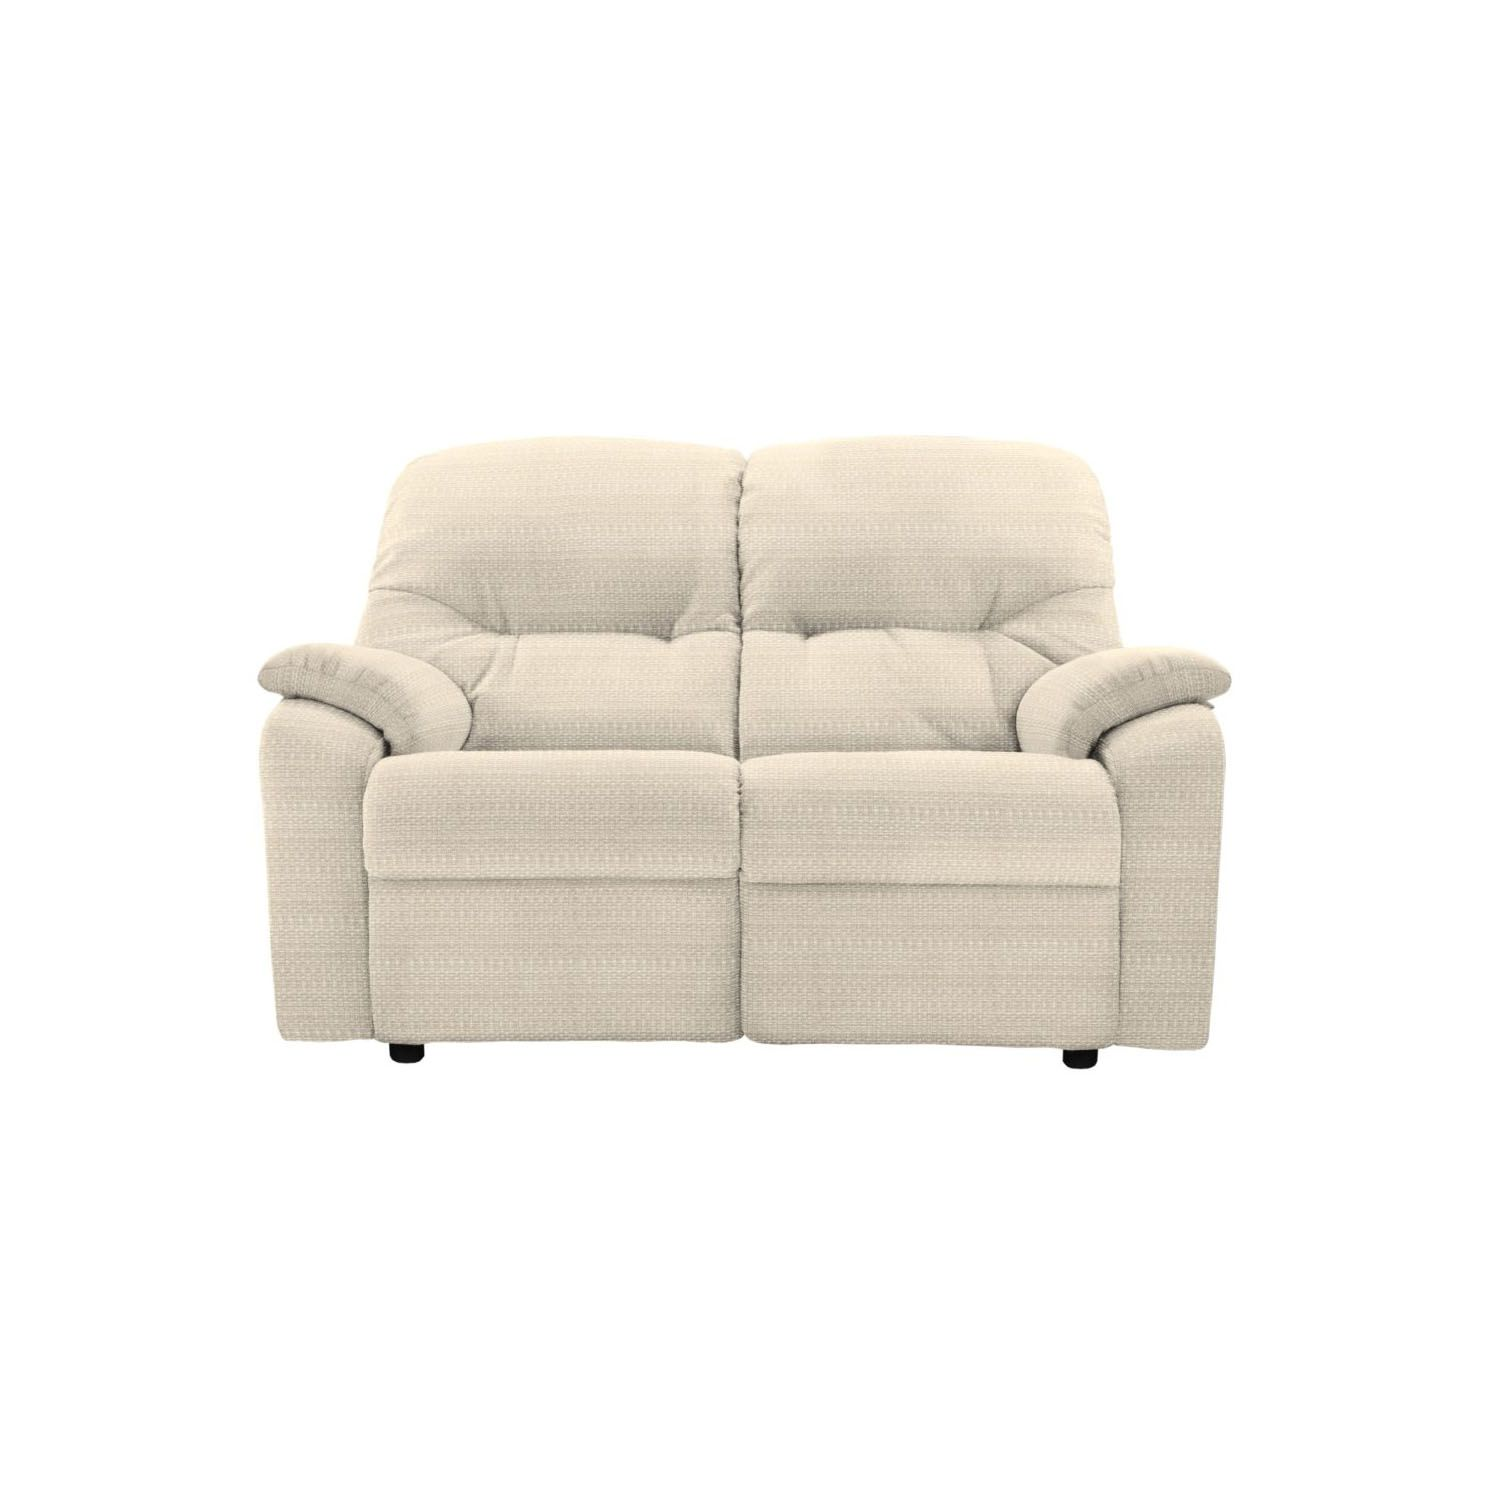 Image of G Plan Mistral 2 Seater Fabric Sofa